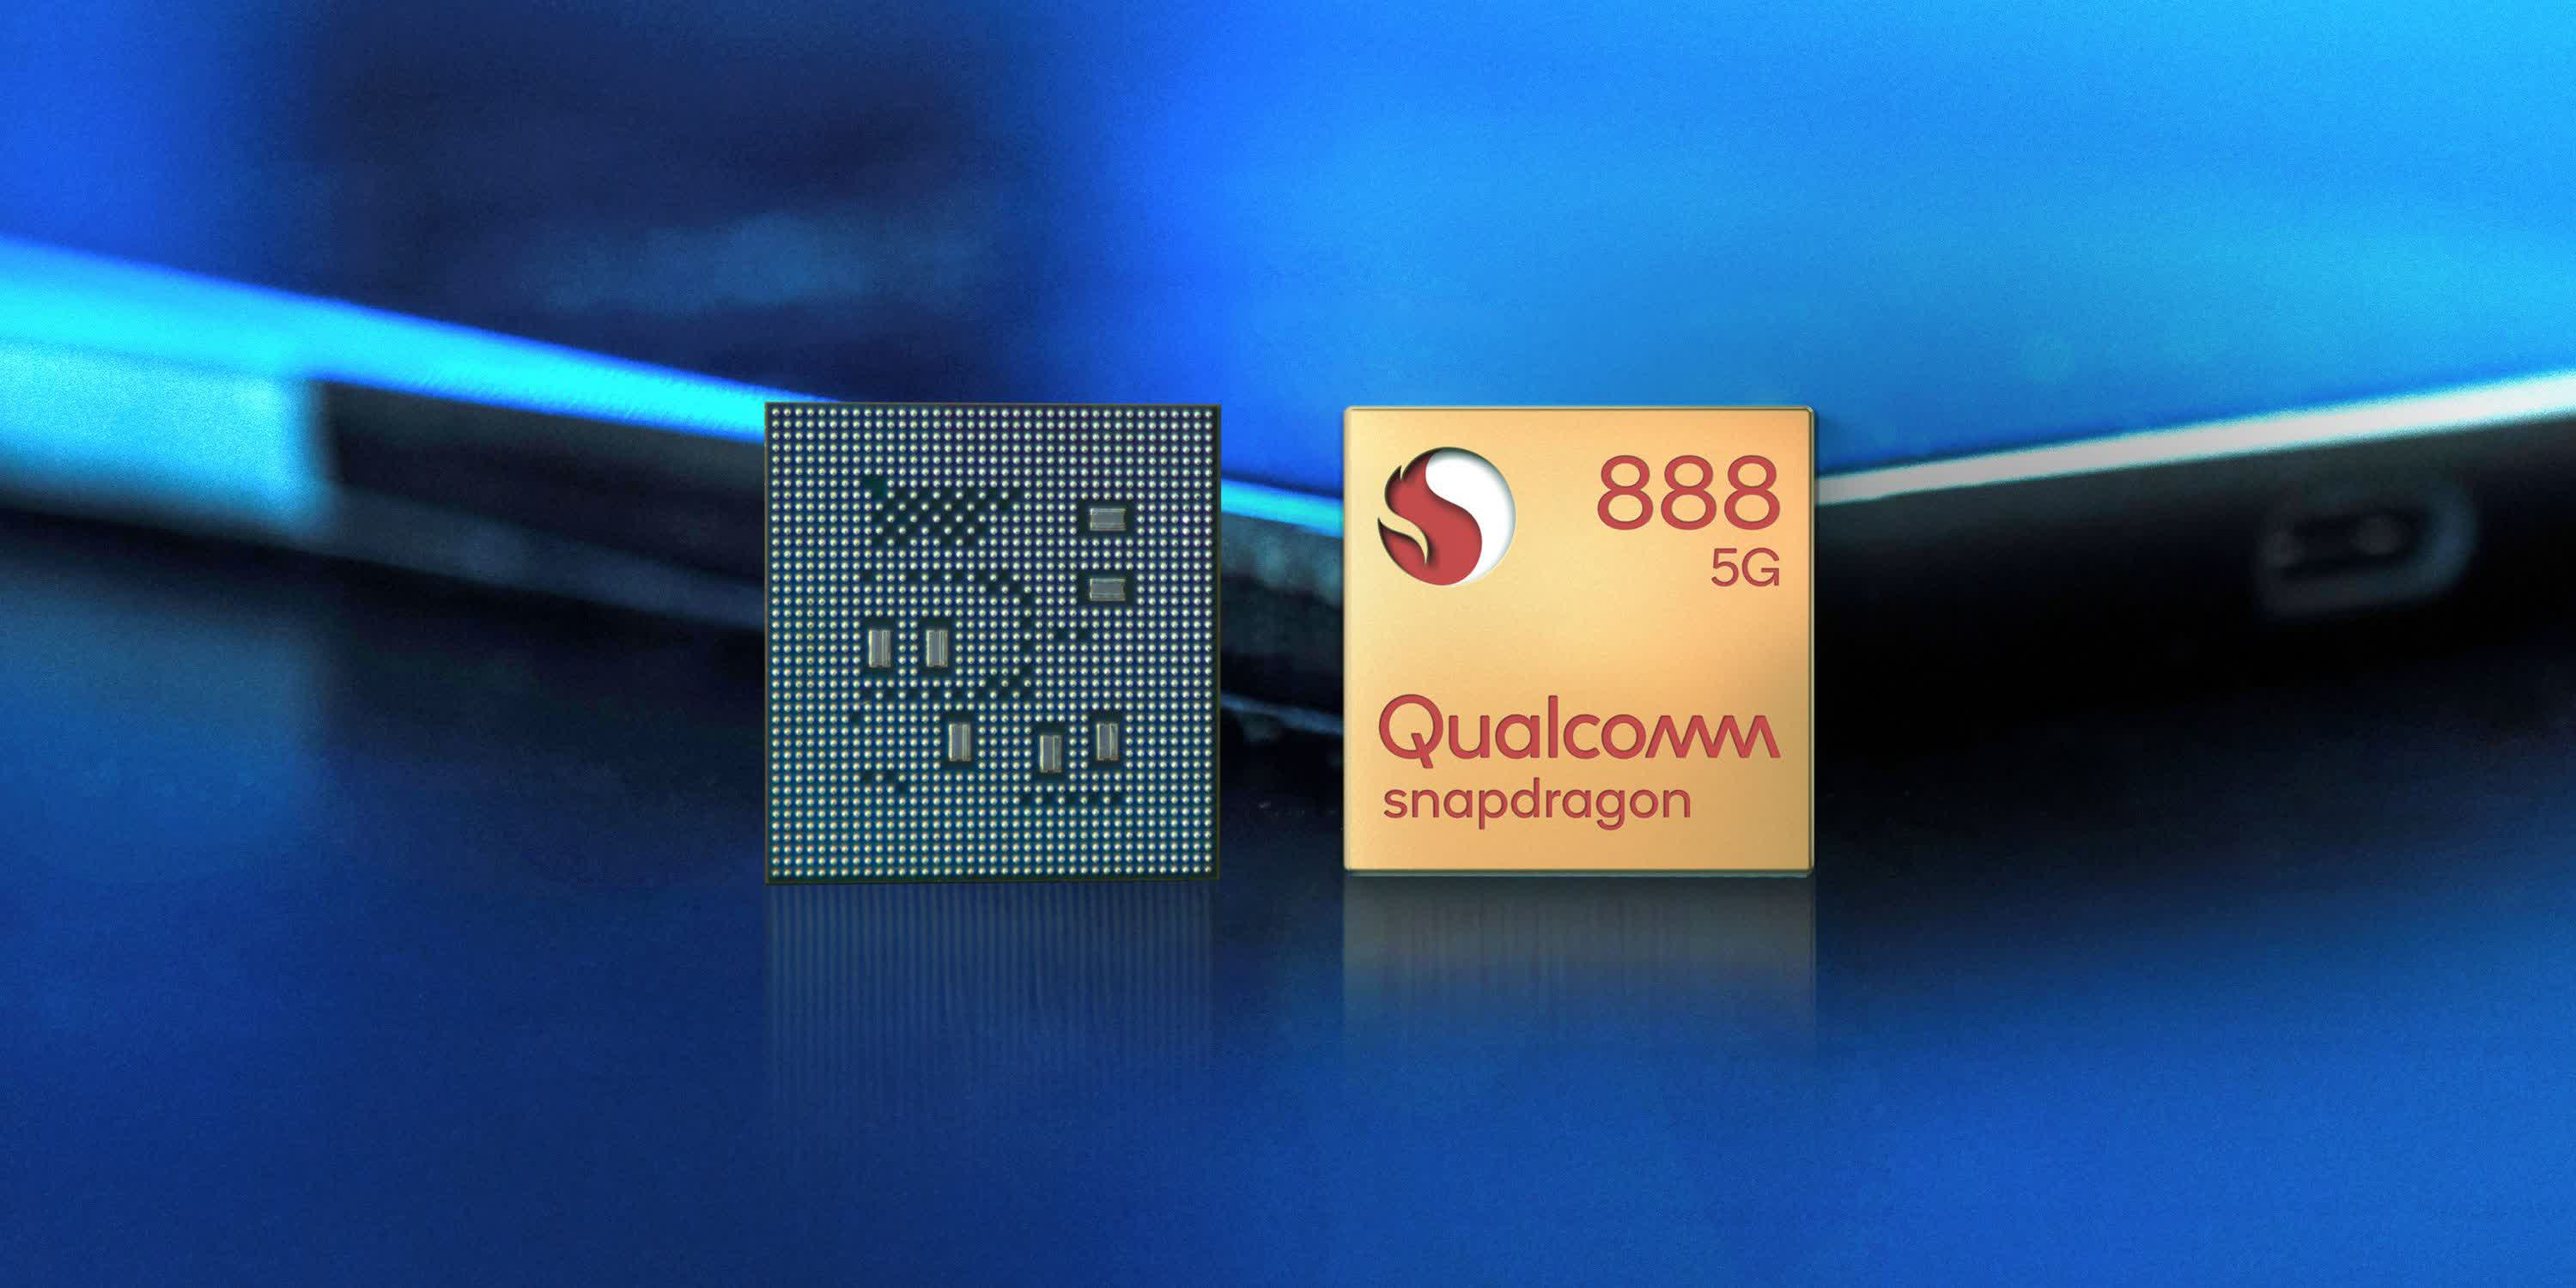 Qualcomm Snapdragon 888 SoC integrates 5G, is coming to your next Android flagship smartphone